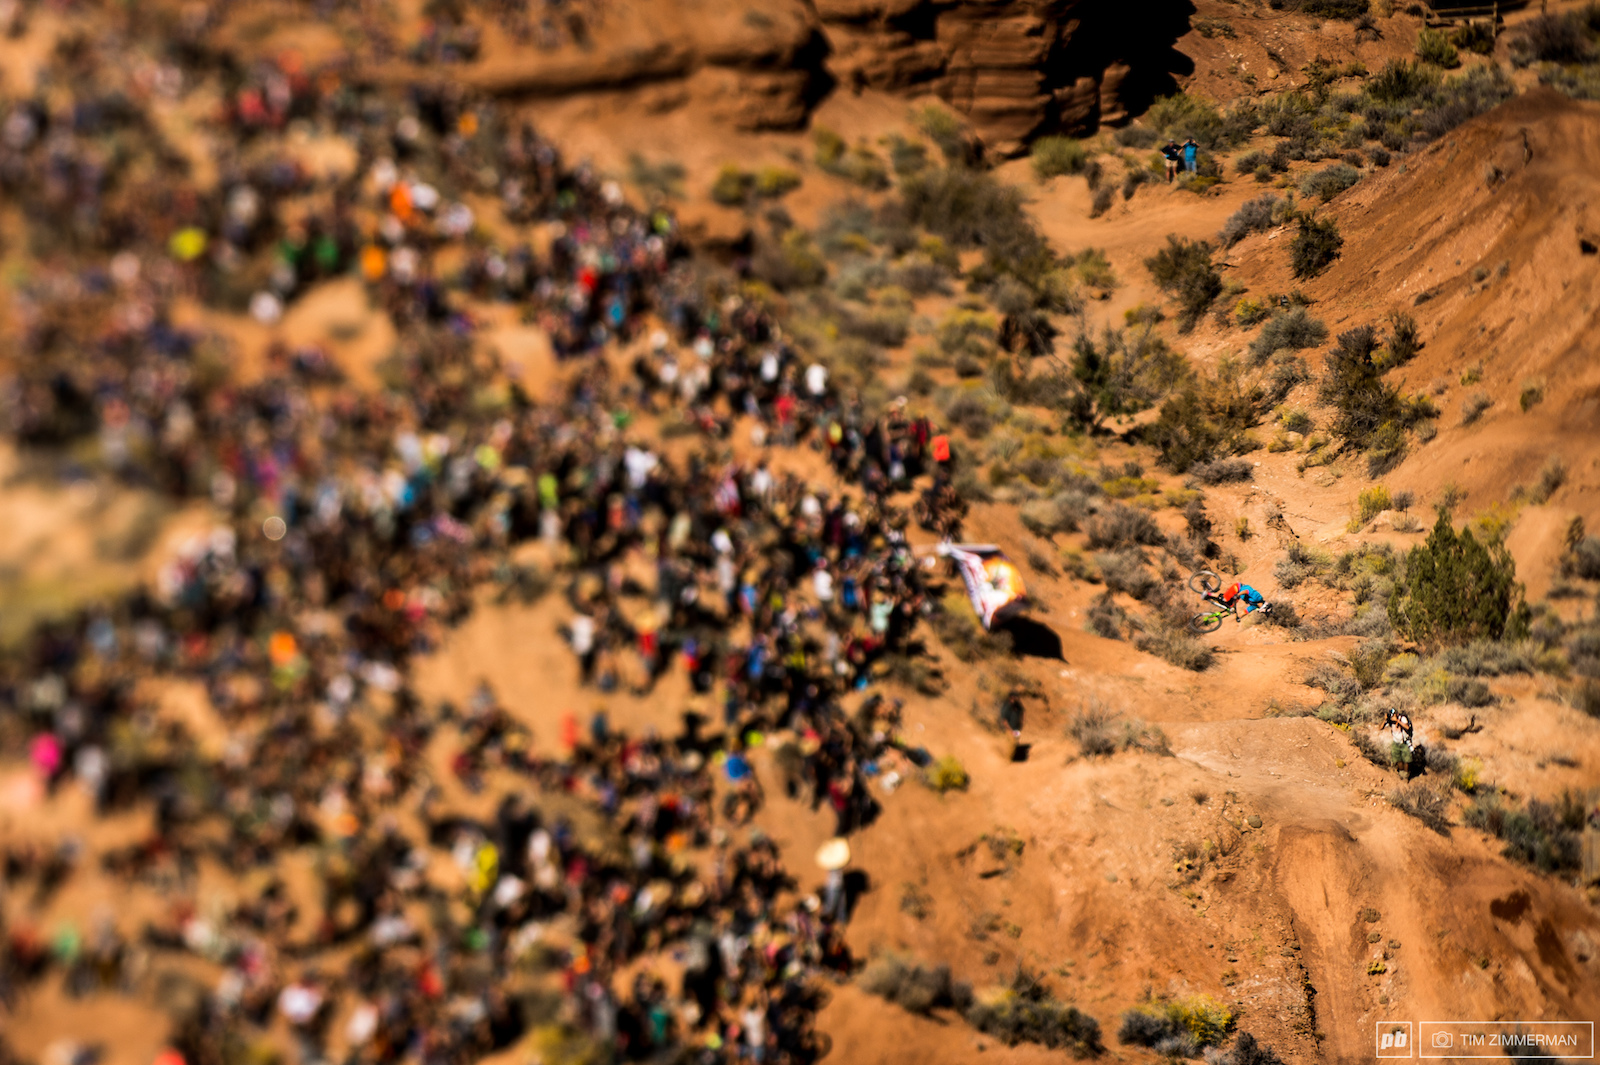 Even with the crowd pulling for you it s up to you alone to ride your line. Darren Berrecloth is no stranger to the complete focus required at Rampage.